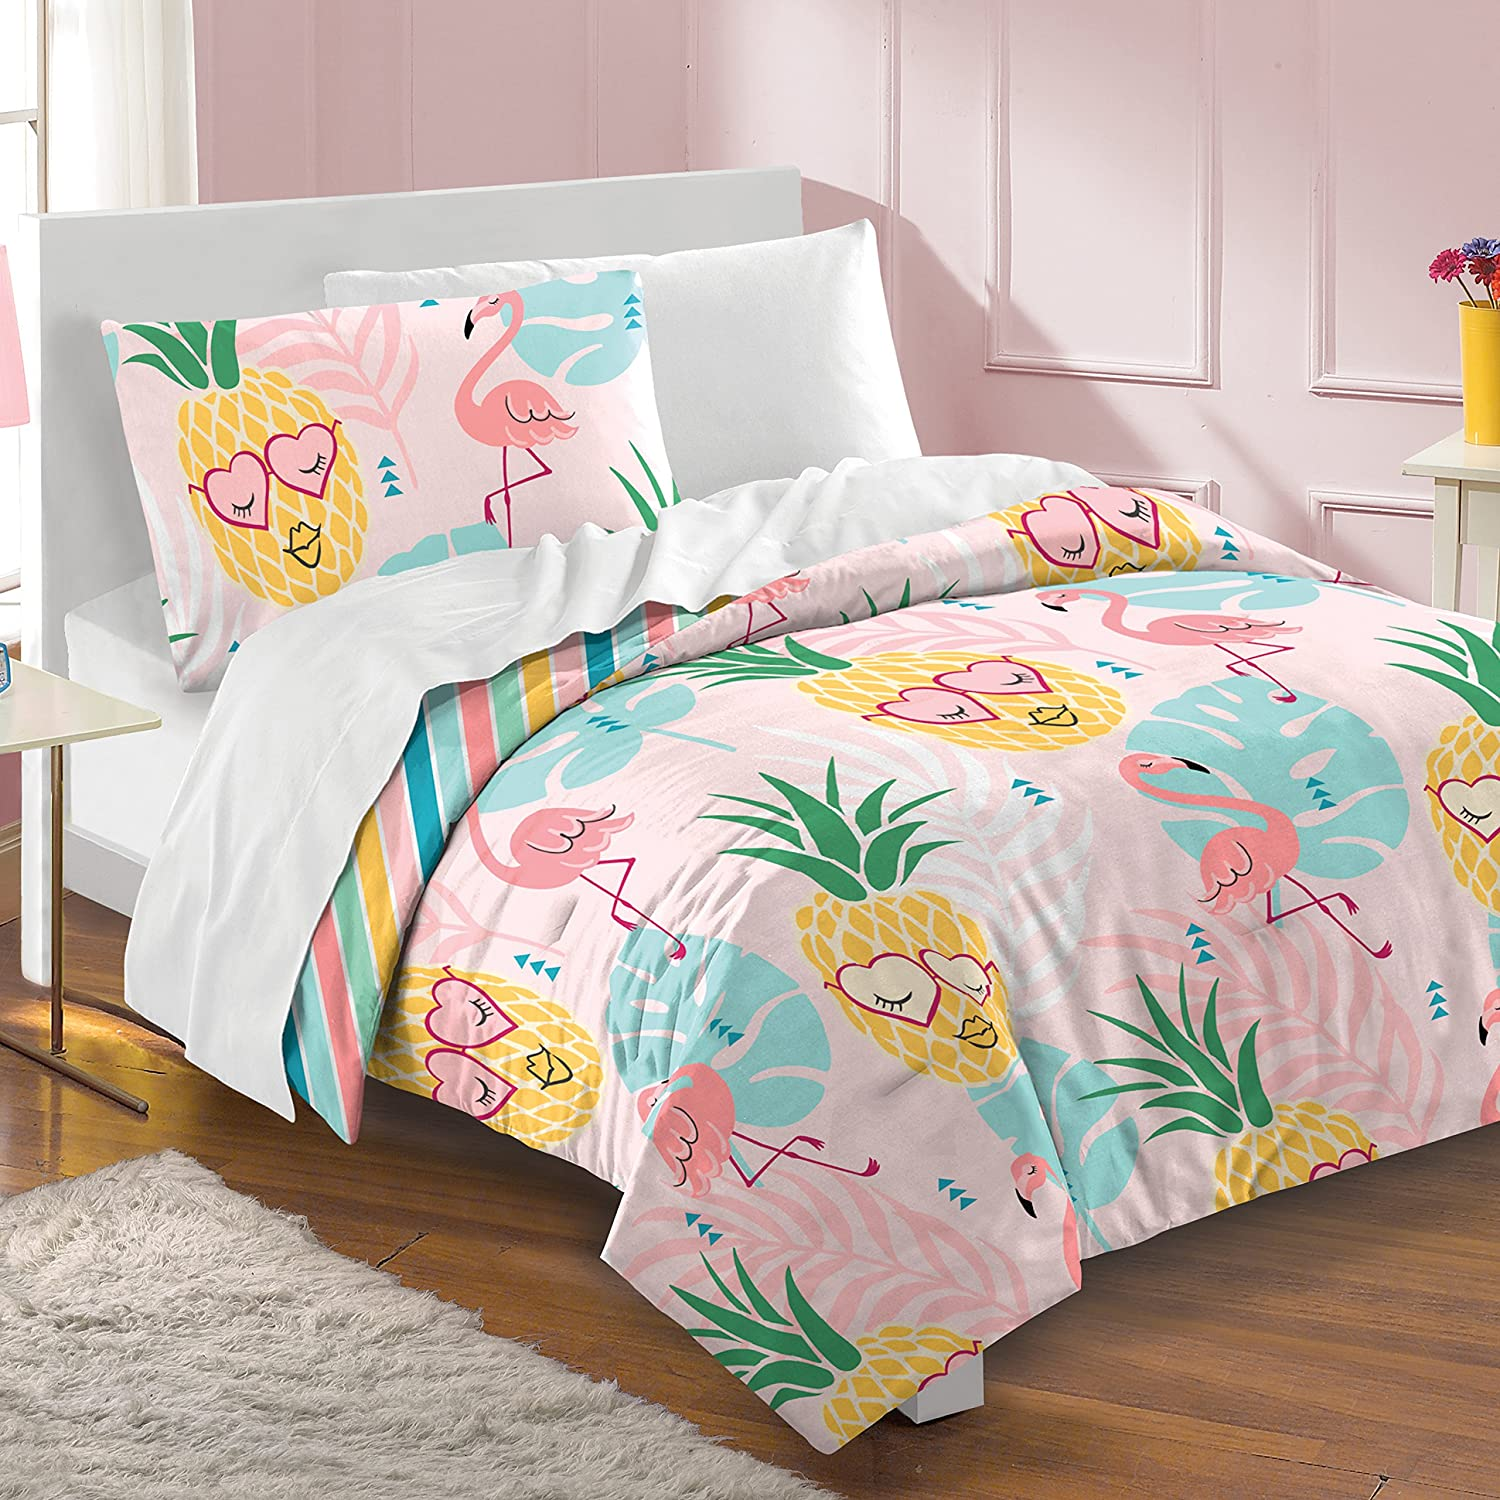 Dream Factory Pineapple Twin Comforter Set, Pink